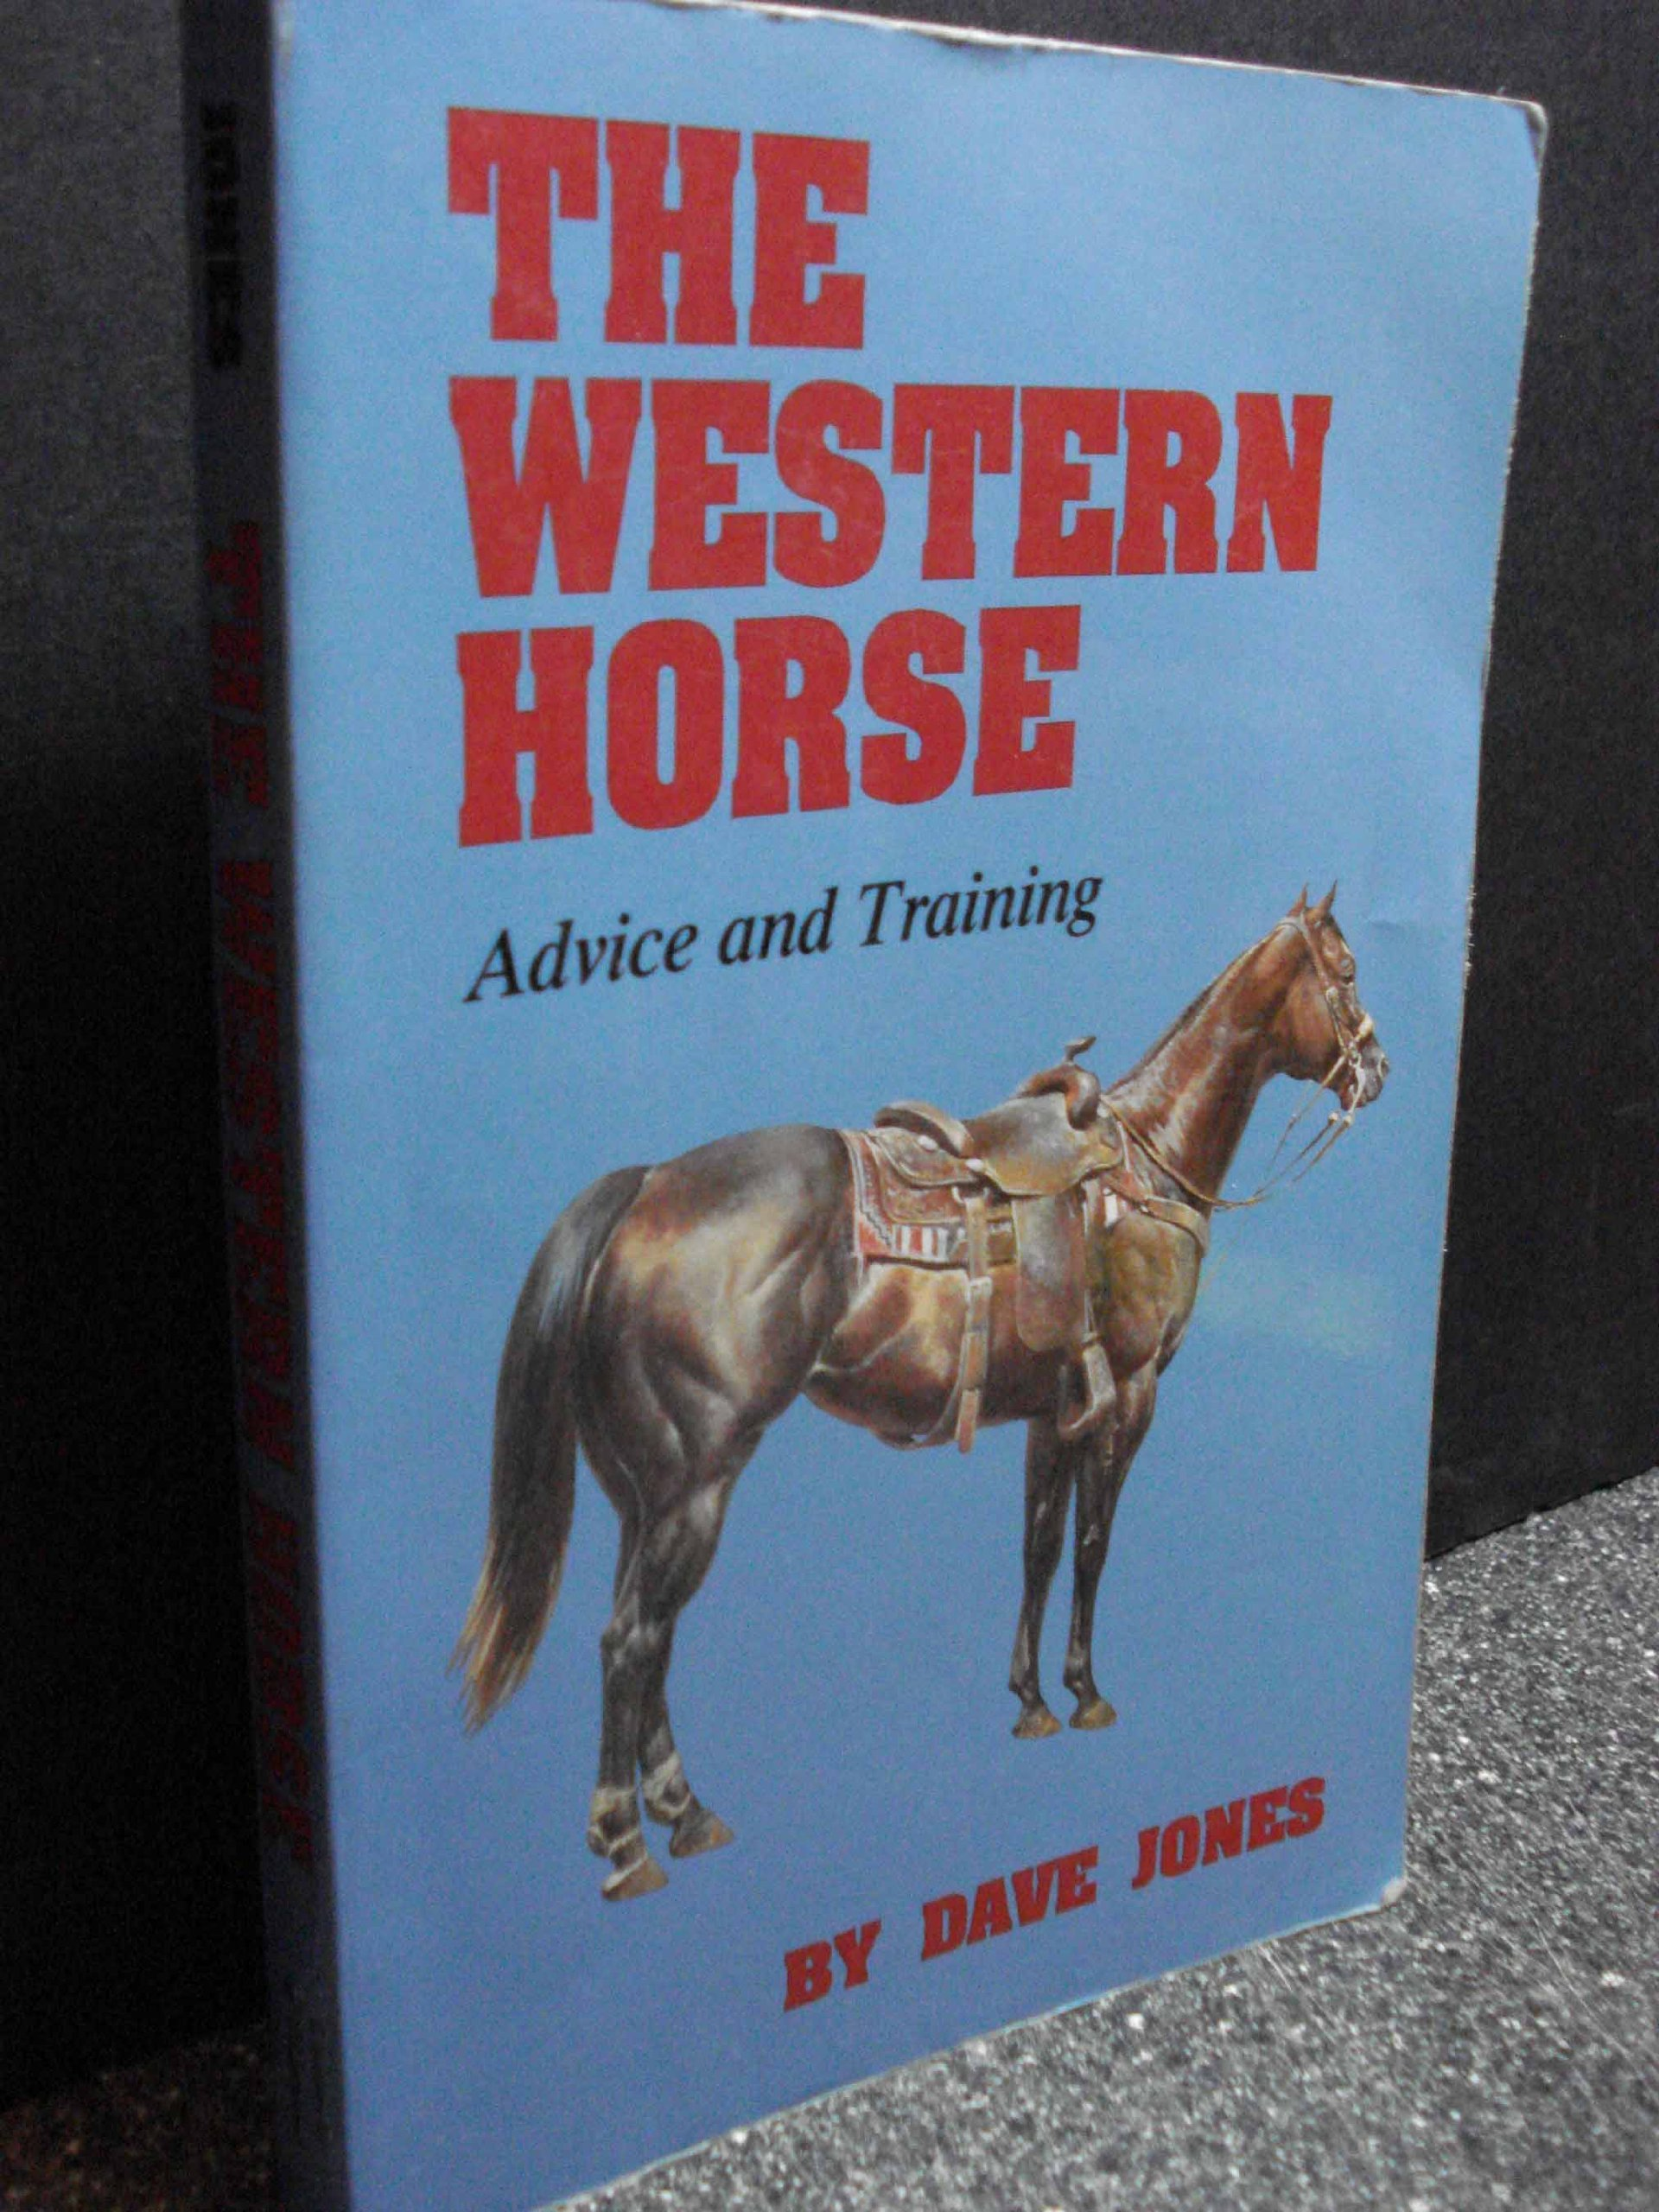 western-horse-advice-and-training